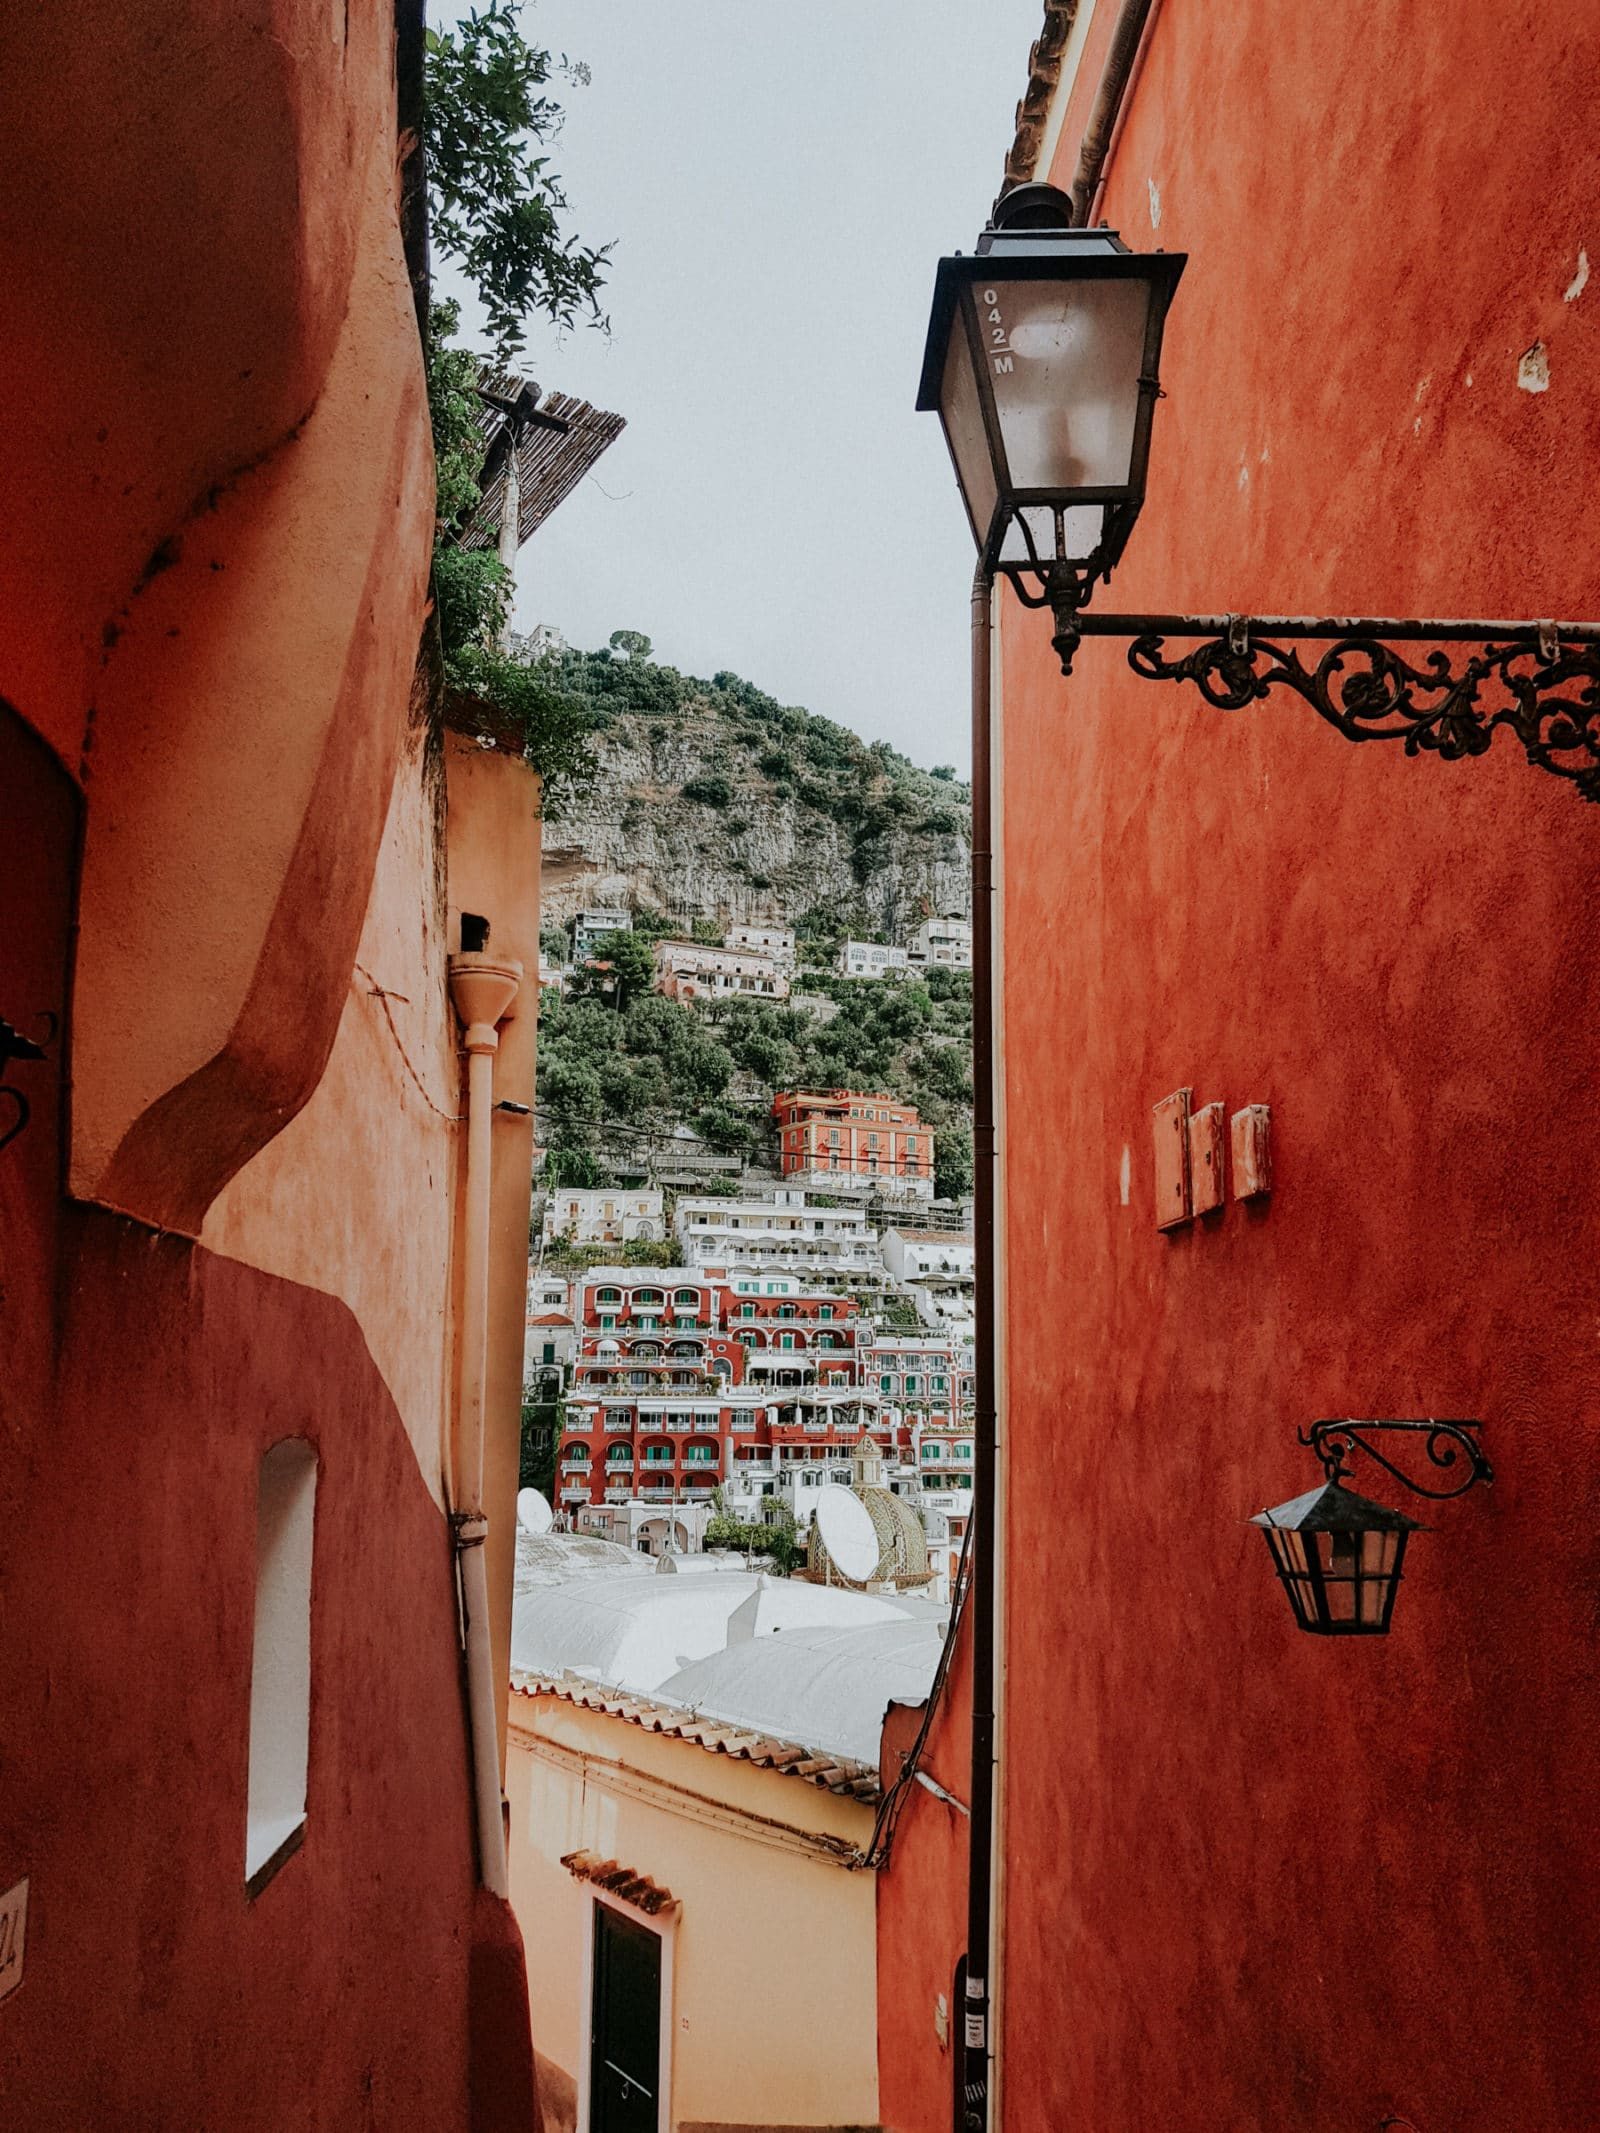 Streets and Stairs in Positano Amalfi Coast